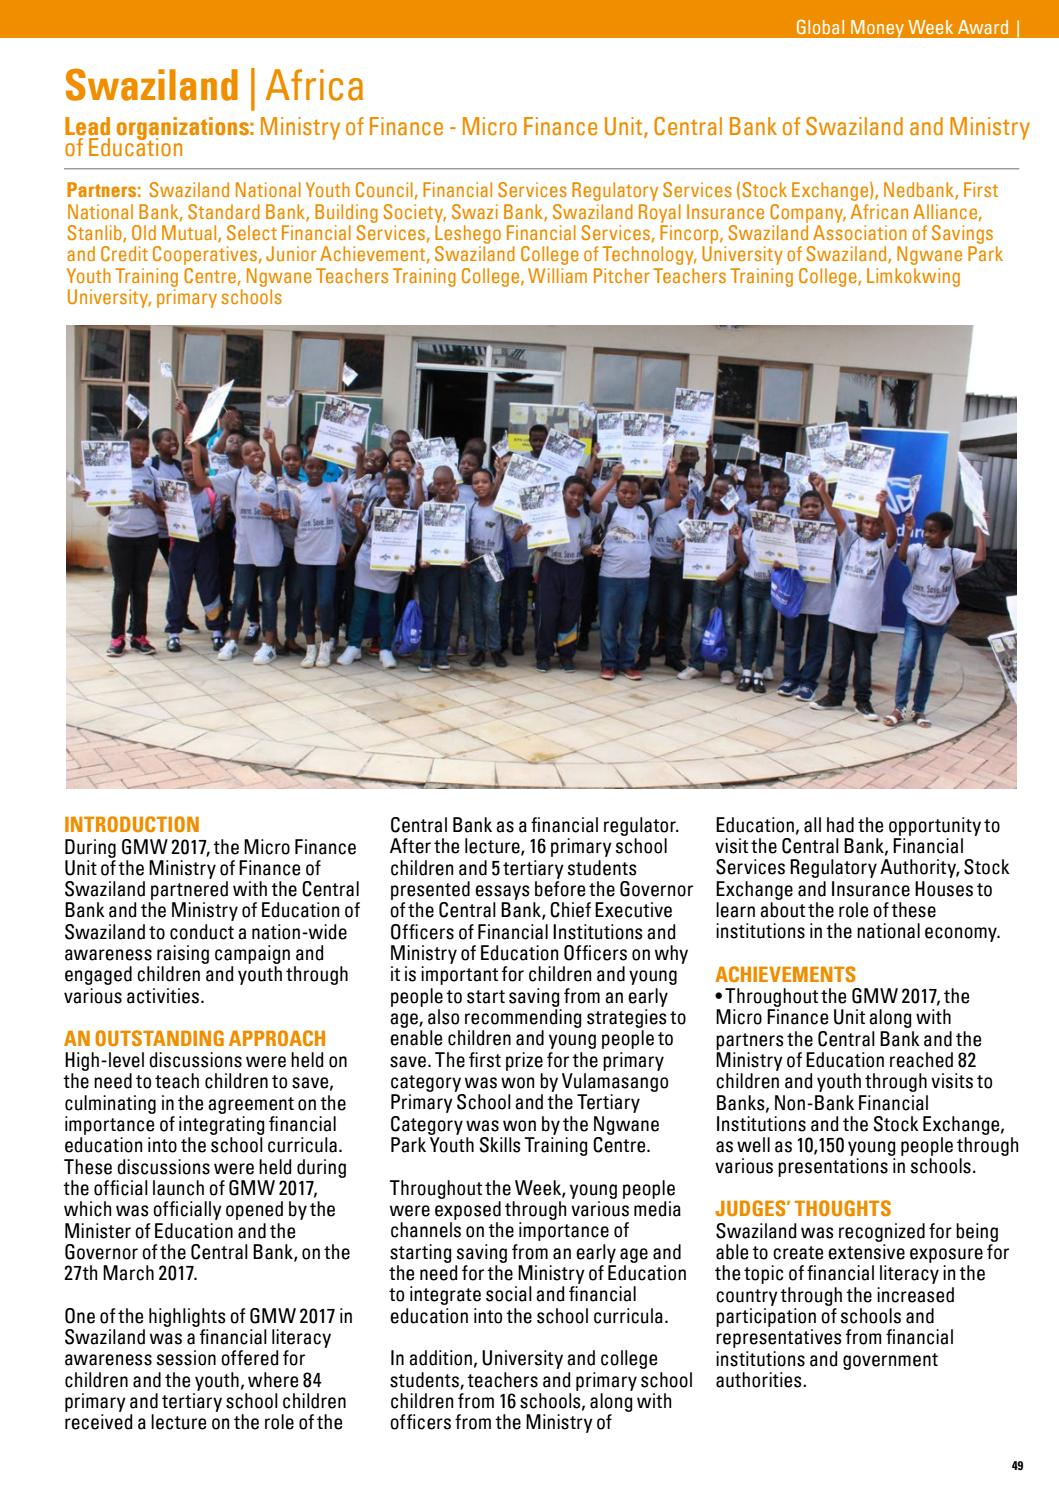 2017 Global Inclusion Awards Report by Child & Youth Finance International  - issuu